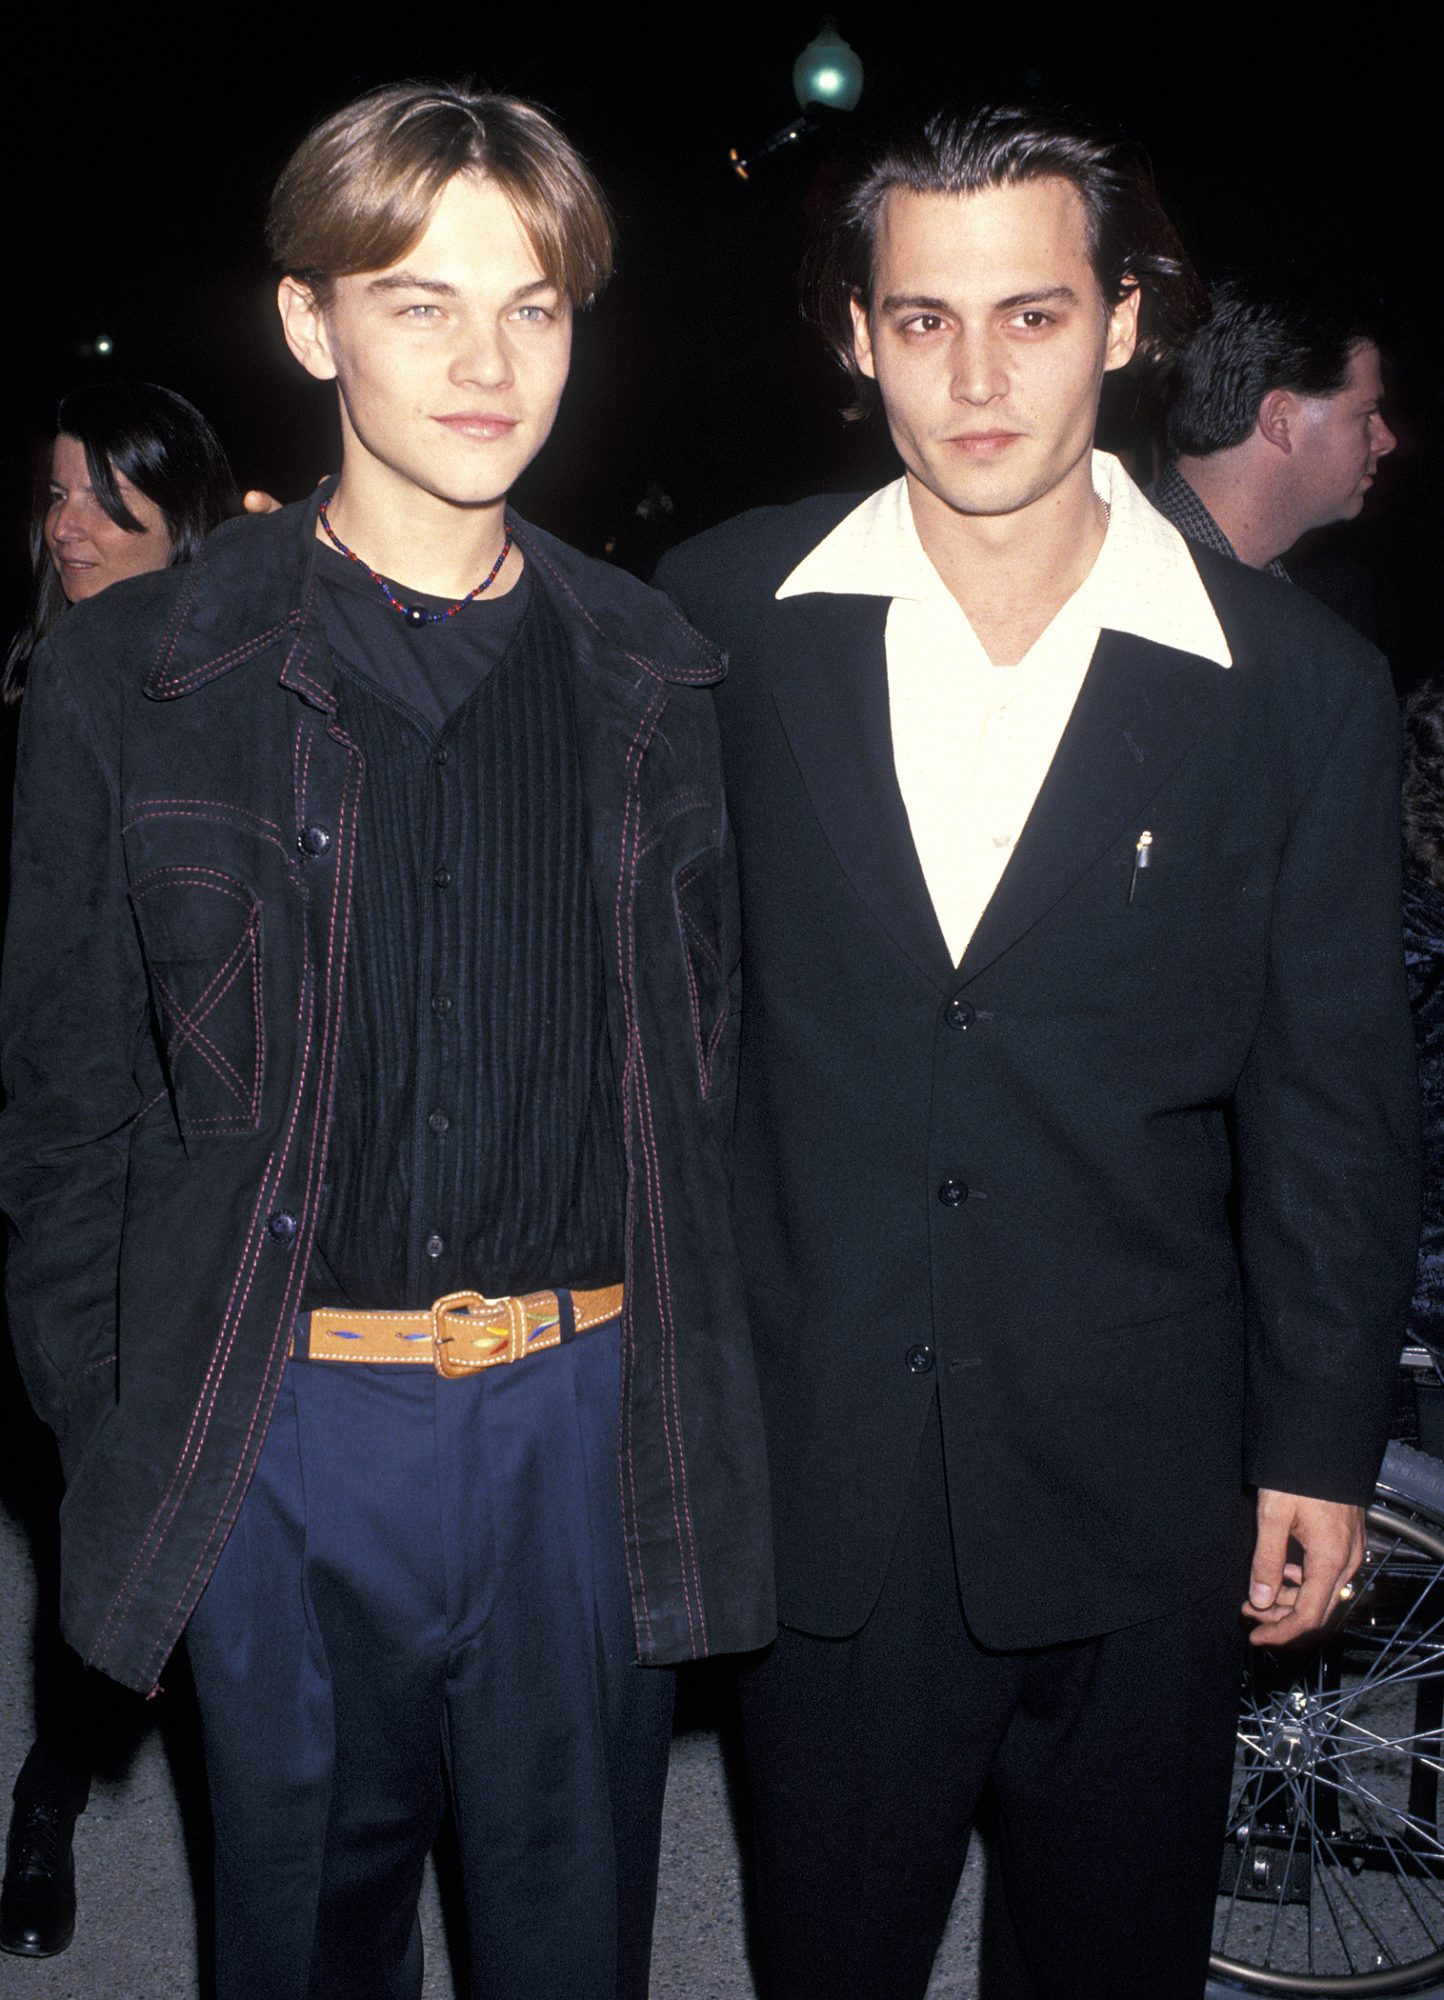 He's chill with Johnny Depp.